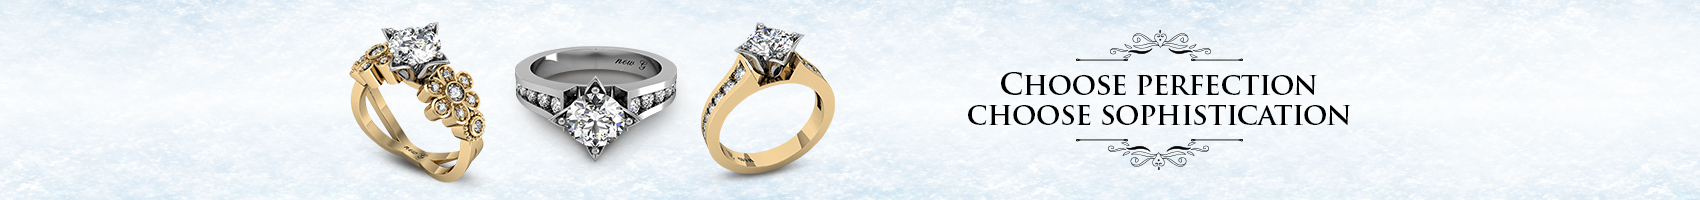 Jewelry Site Banner Ads Recreation